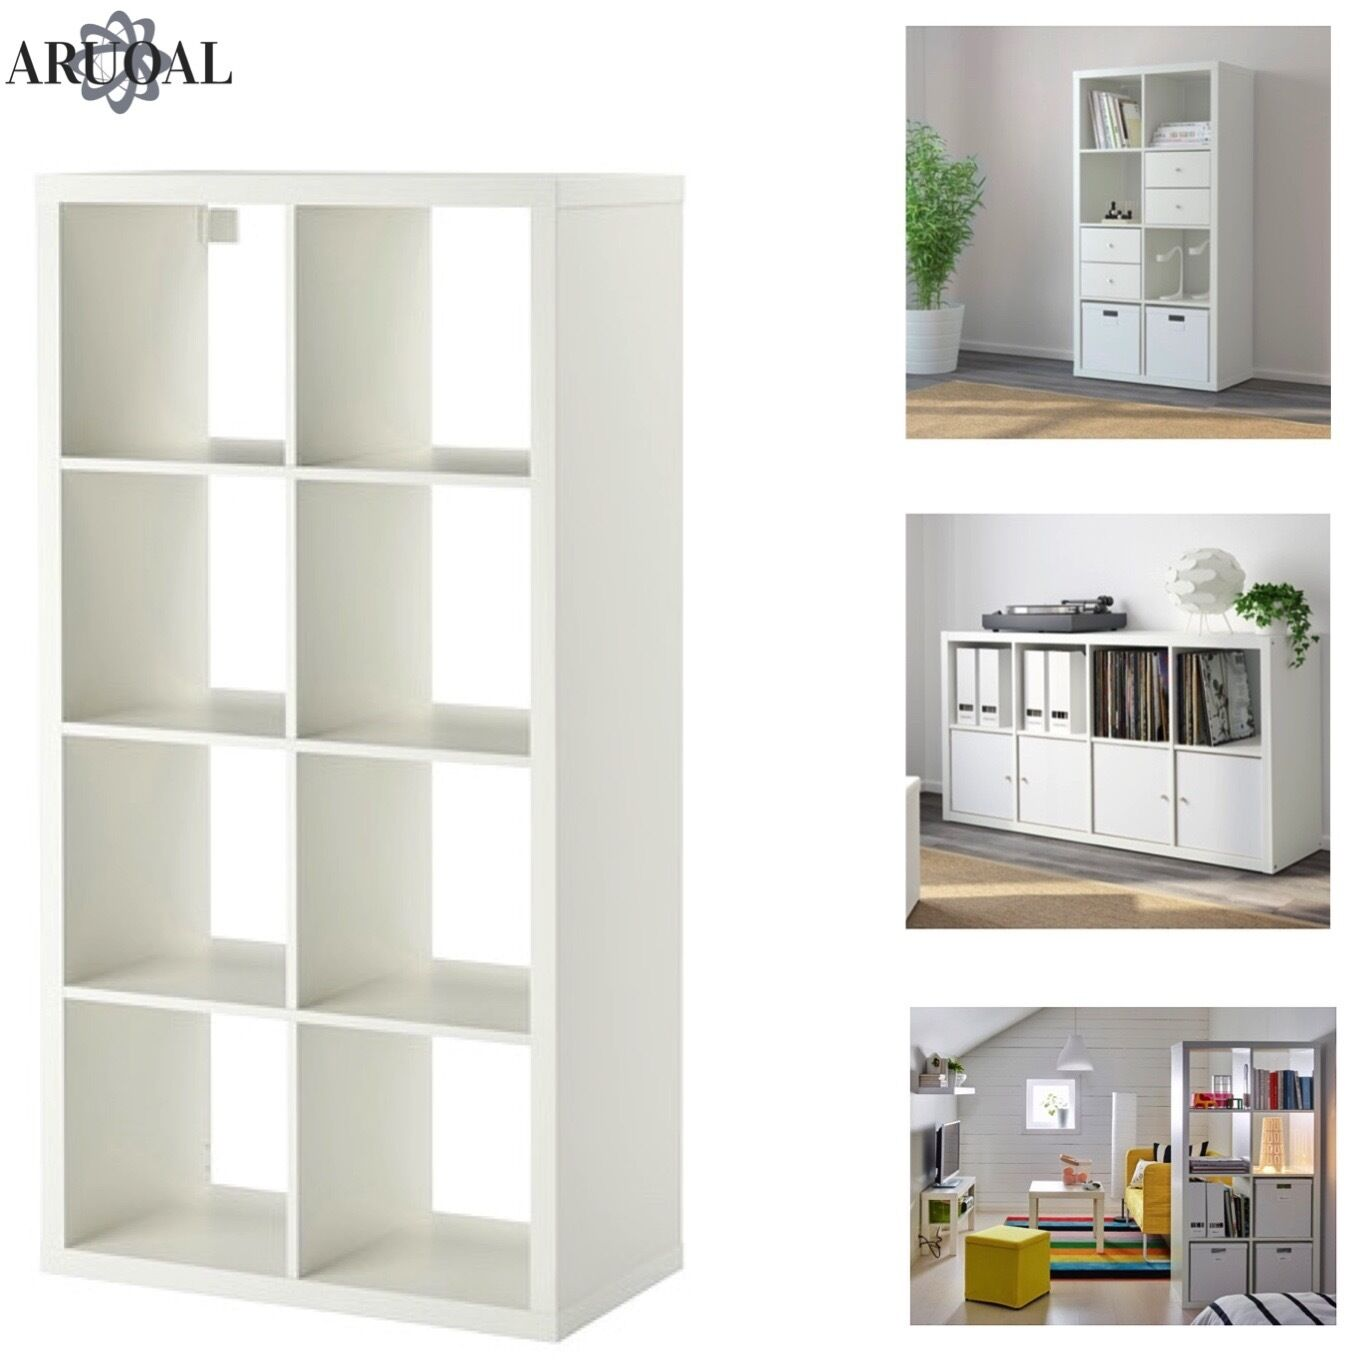 Ikea Kallax Weiß Книжный шкаф или полка Ikea Kallax Wei 8 Regal Display Aufbewahrung Regal Expedit